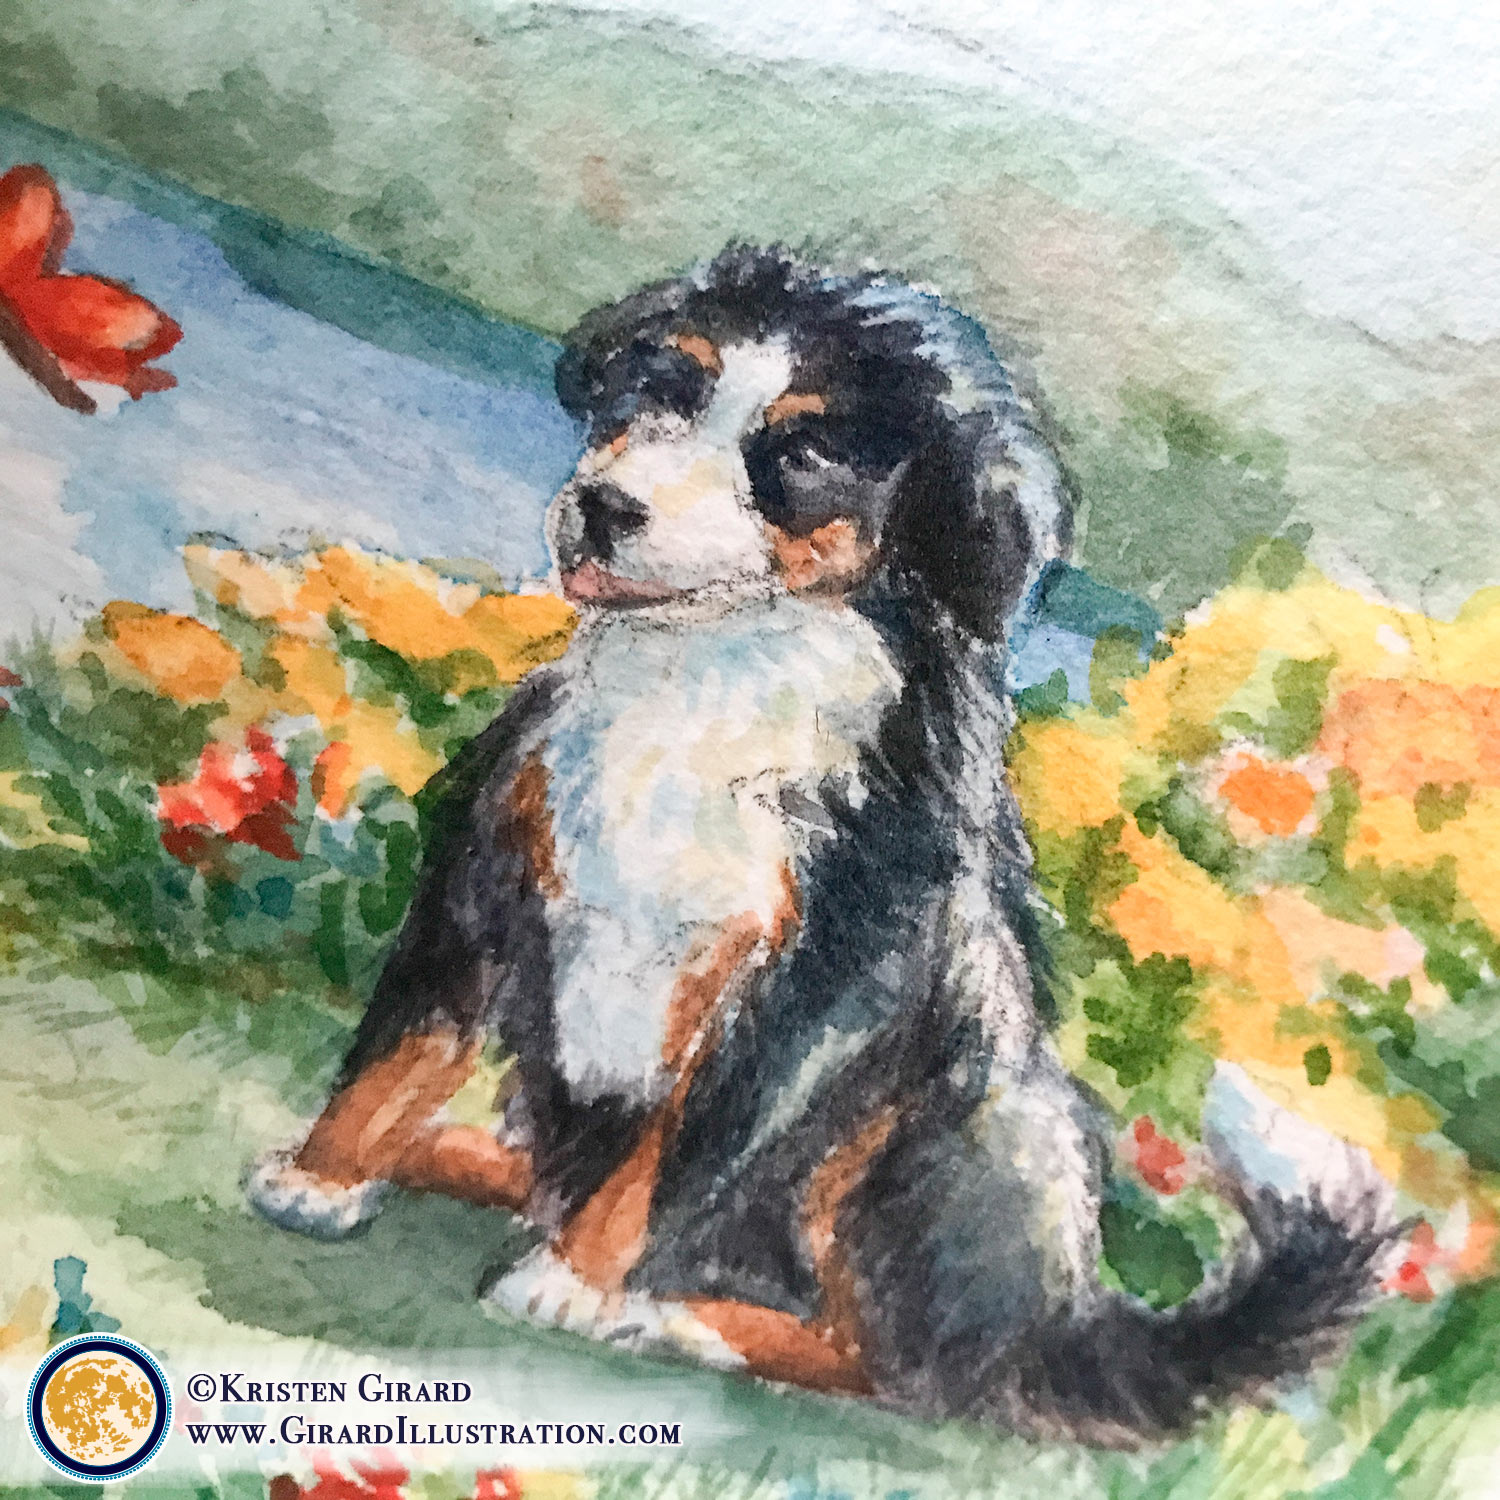 This is Riggins.  He had the honor of being the ring bearer for his people, Emily and Lee, at their wedding celebration in Lake Placid, NY in the Adirondack Park. To commemorate the wedding day Riggins the Bernece Mountain dog was included on the custom illustrated certificate of marriage created as a watercolor painting by Kristen Girard.  © Kristen Girard at Girard Illustration.